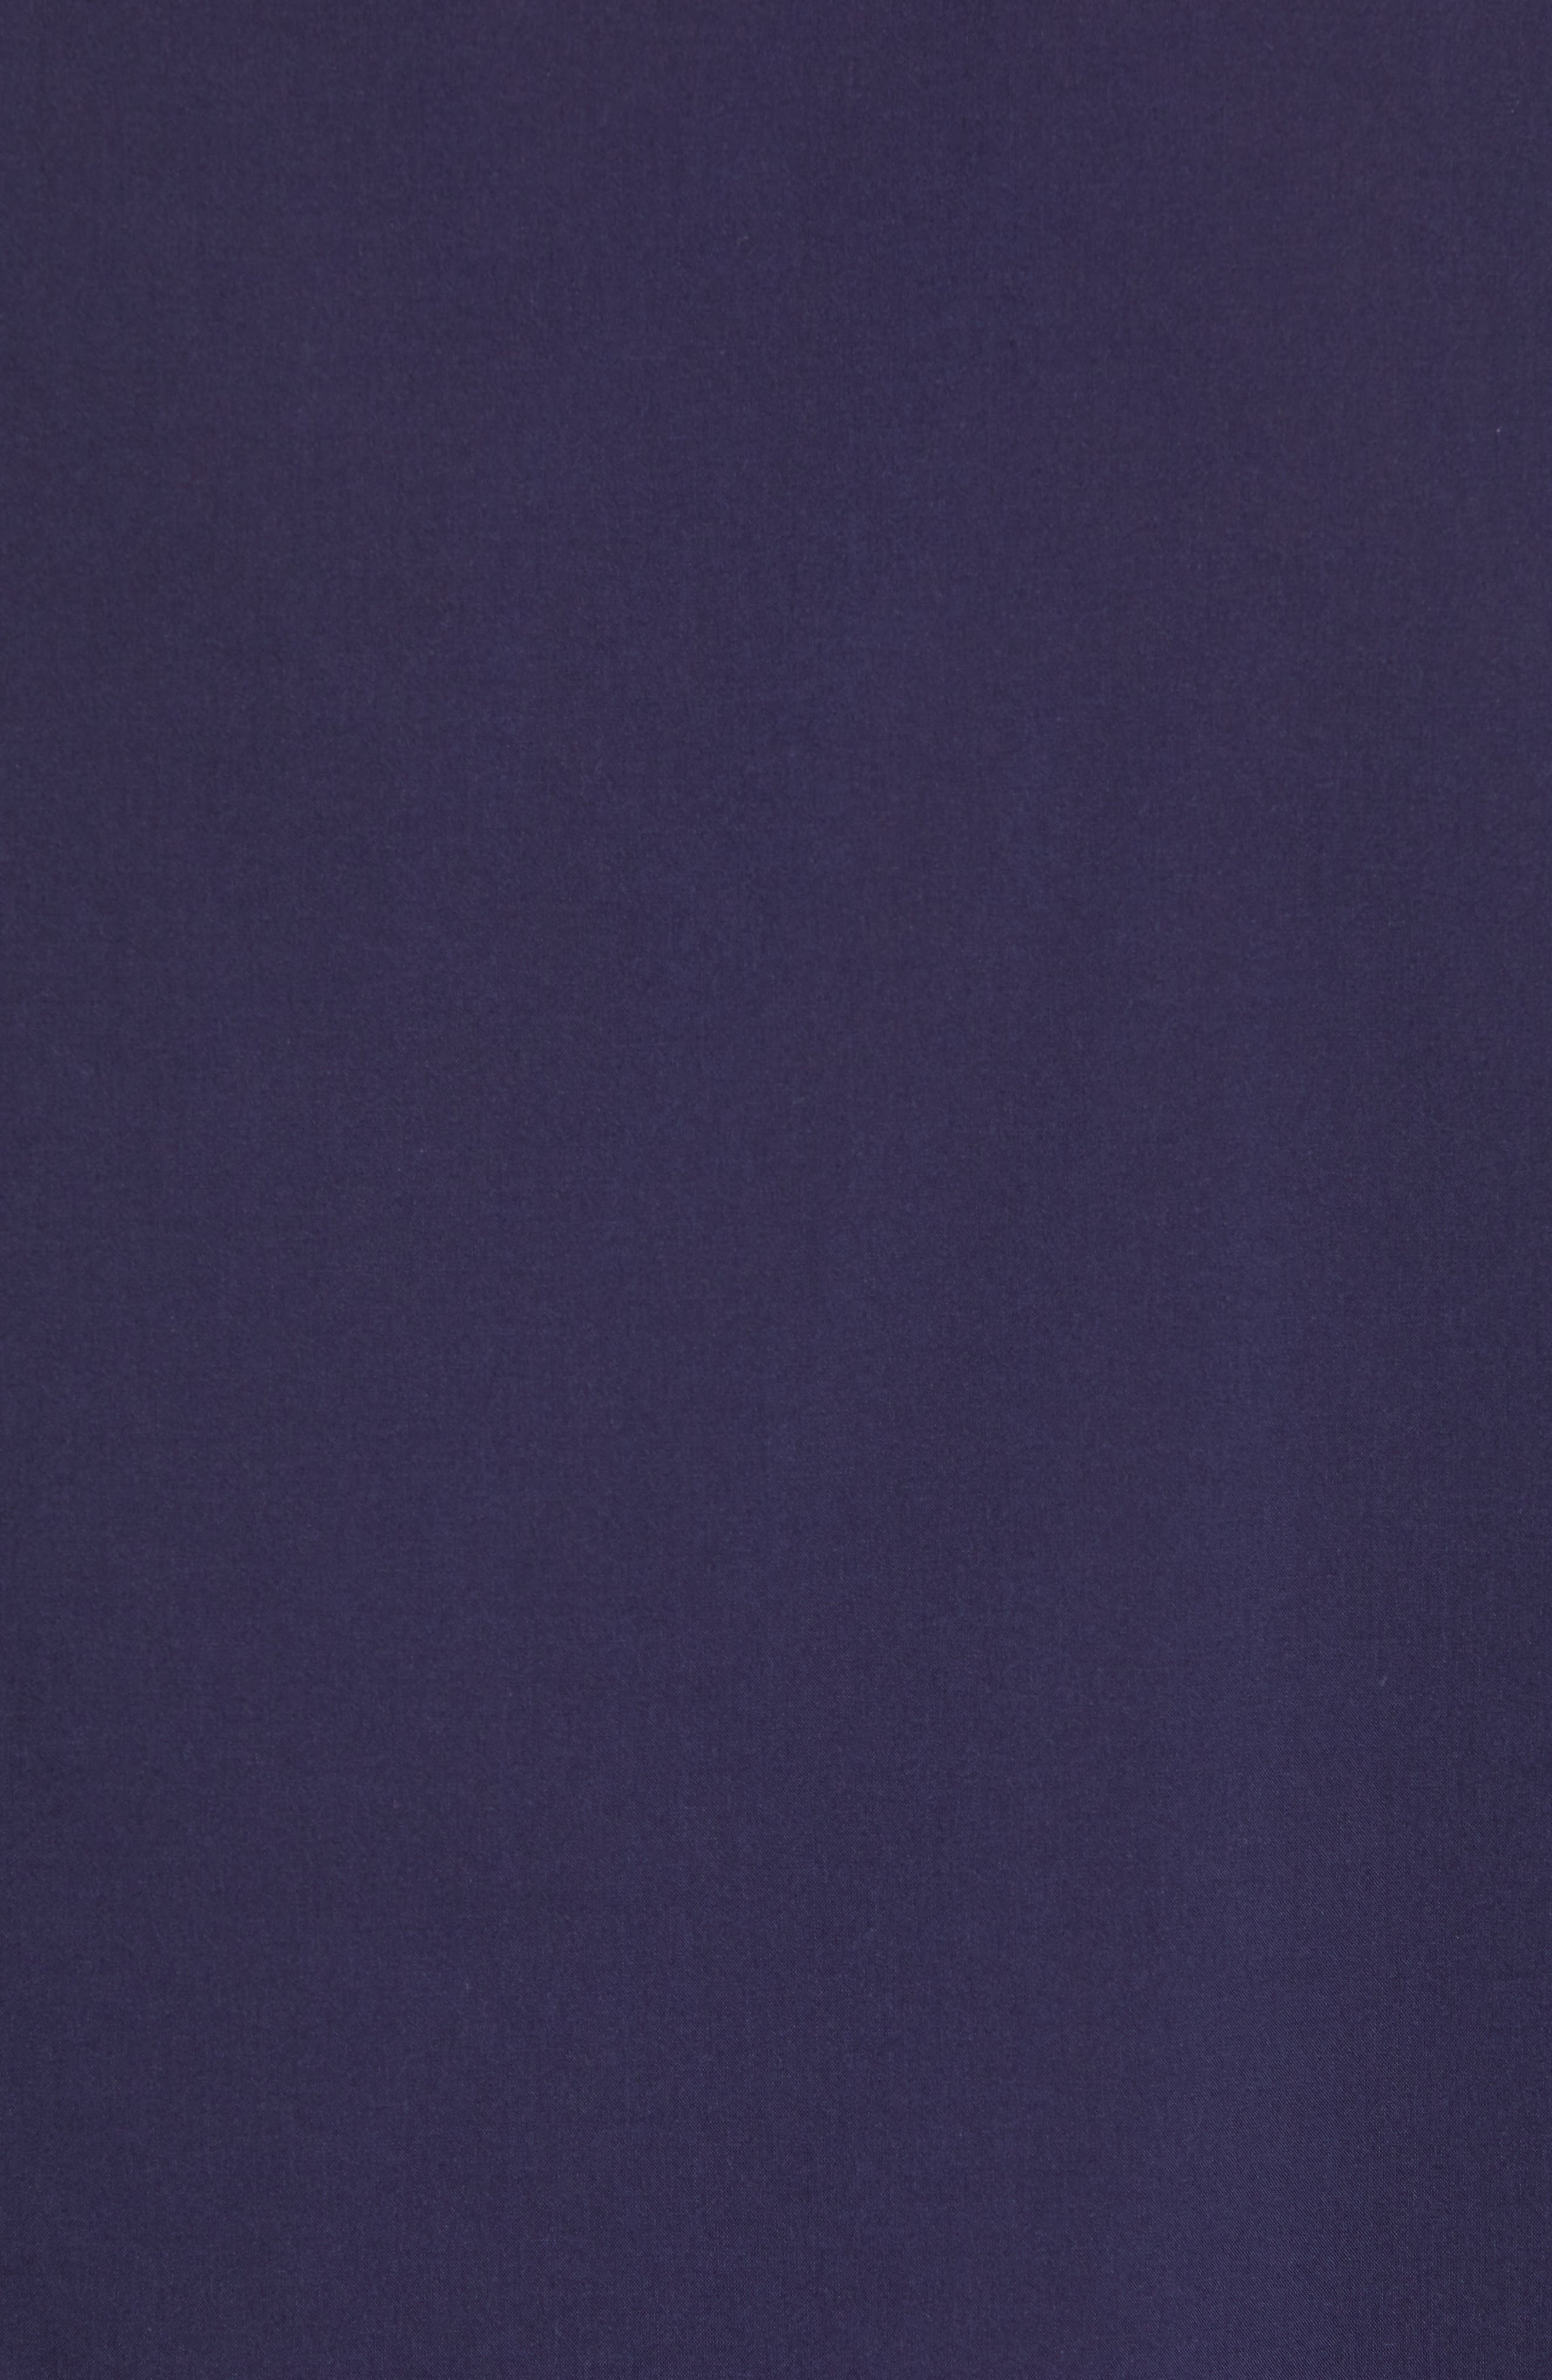 Pacifica Regular Fit Solid Sport Shirt,                             Alternate thumbnail 5, color,                             Navy